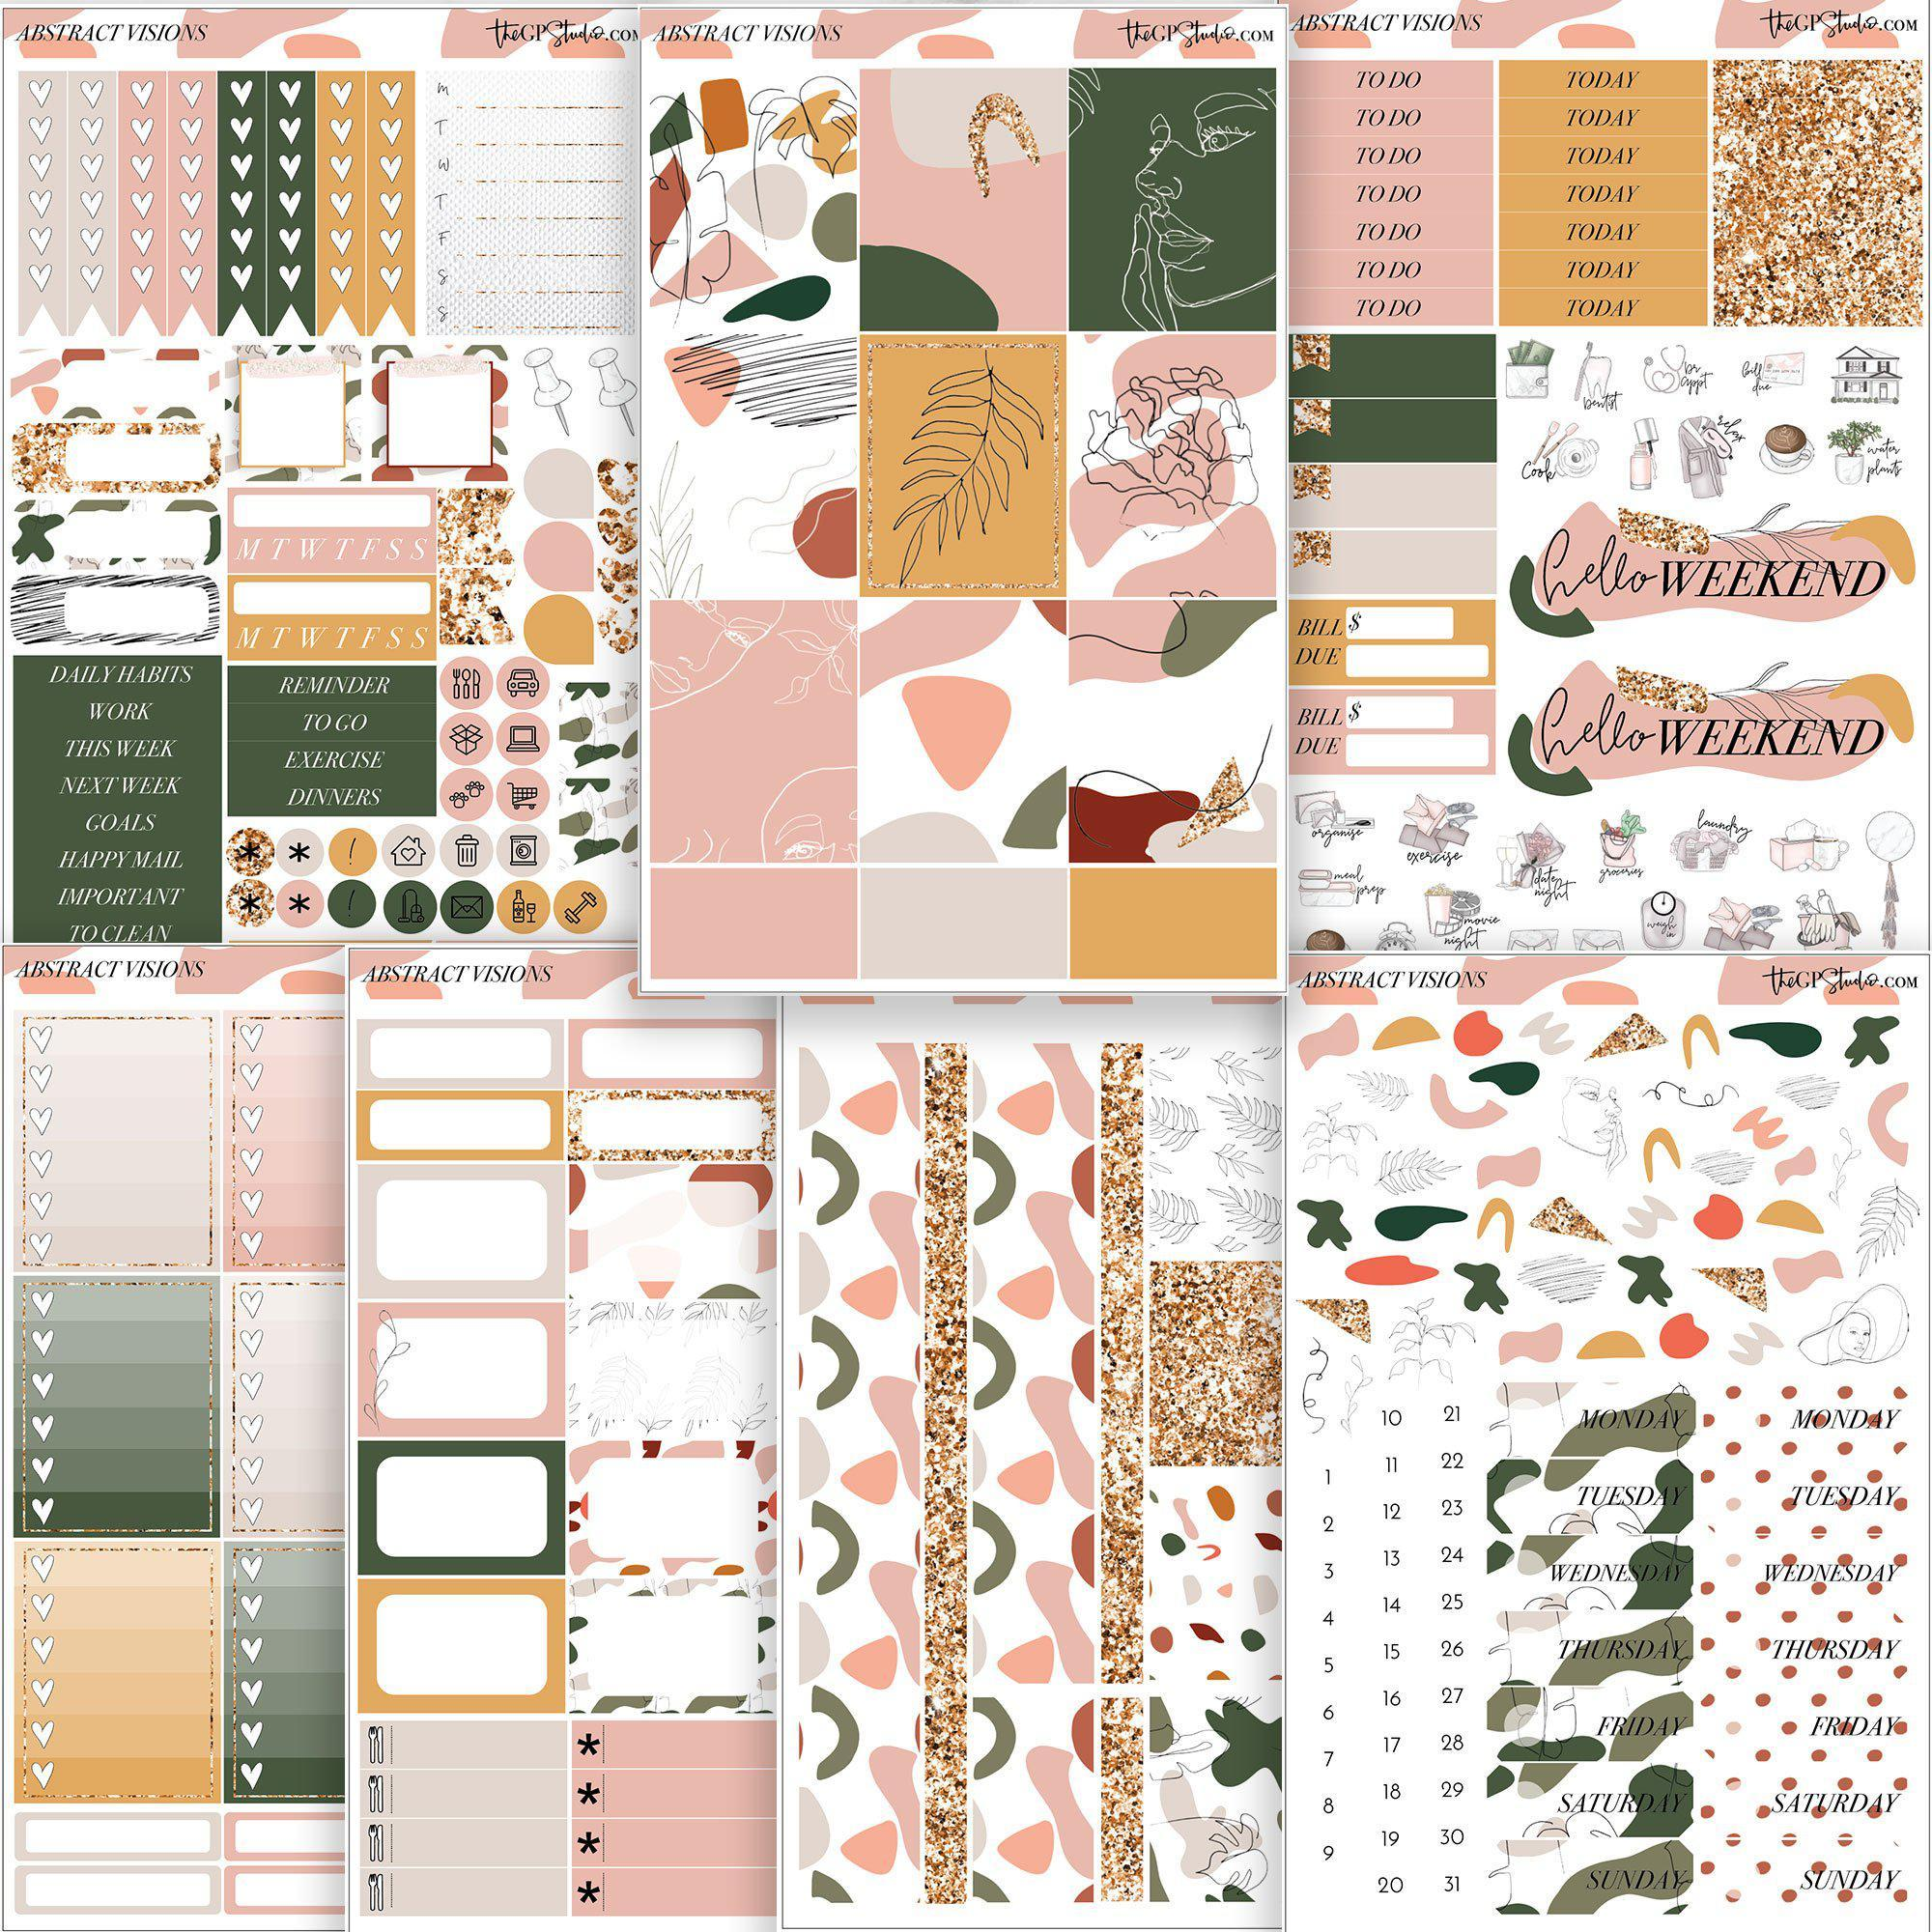 ABSTRACT VISIONS Planner Sticker Kit-The GP Studio